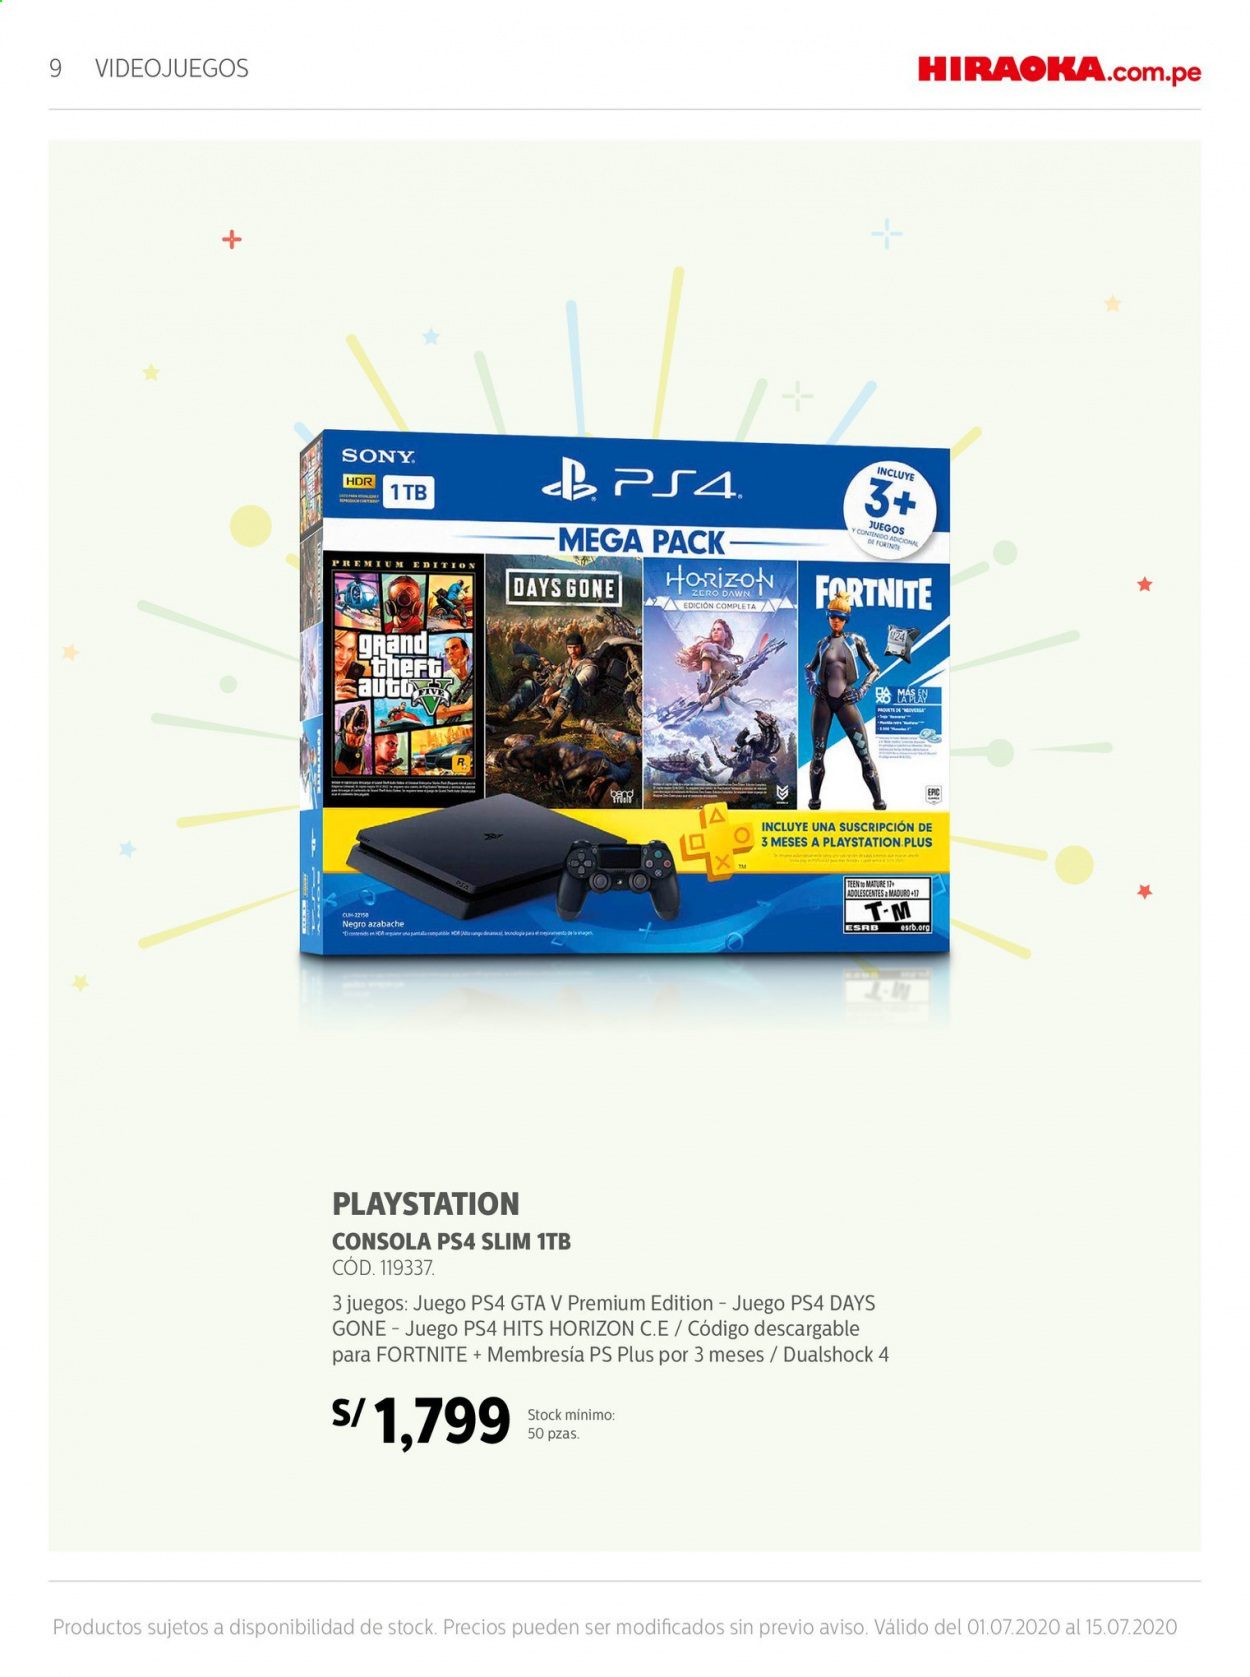 Folleto actual Importaciones Hiraoka - 1.7.2020 - 15.7.2020 - Ventas - auto, cónsola, juego, playstation, sony, slim, fortnite, ps4. Página 9.